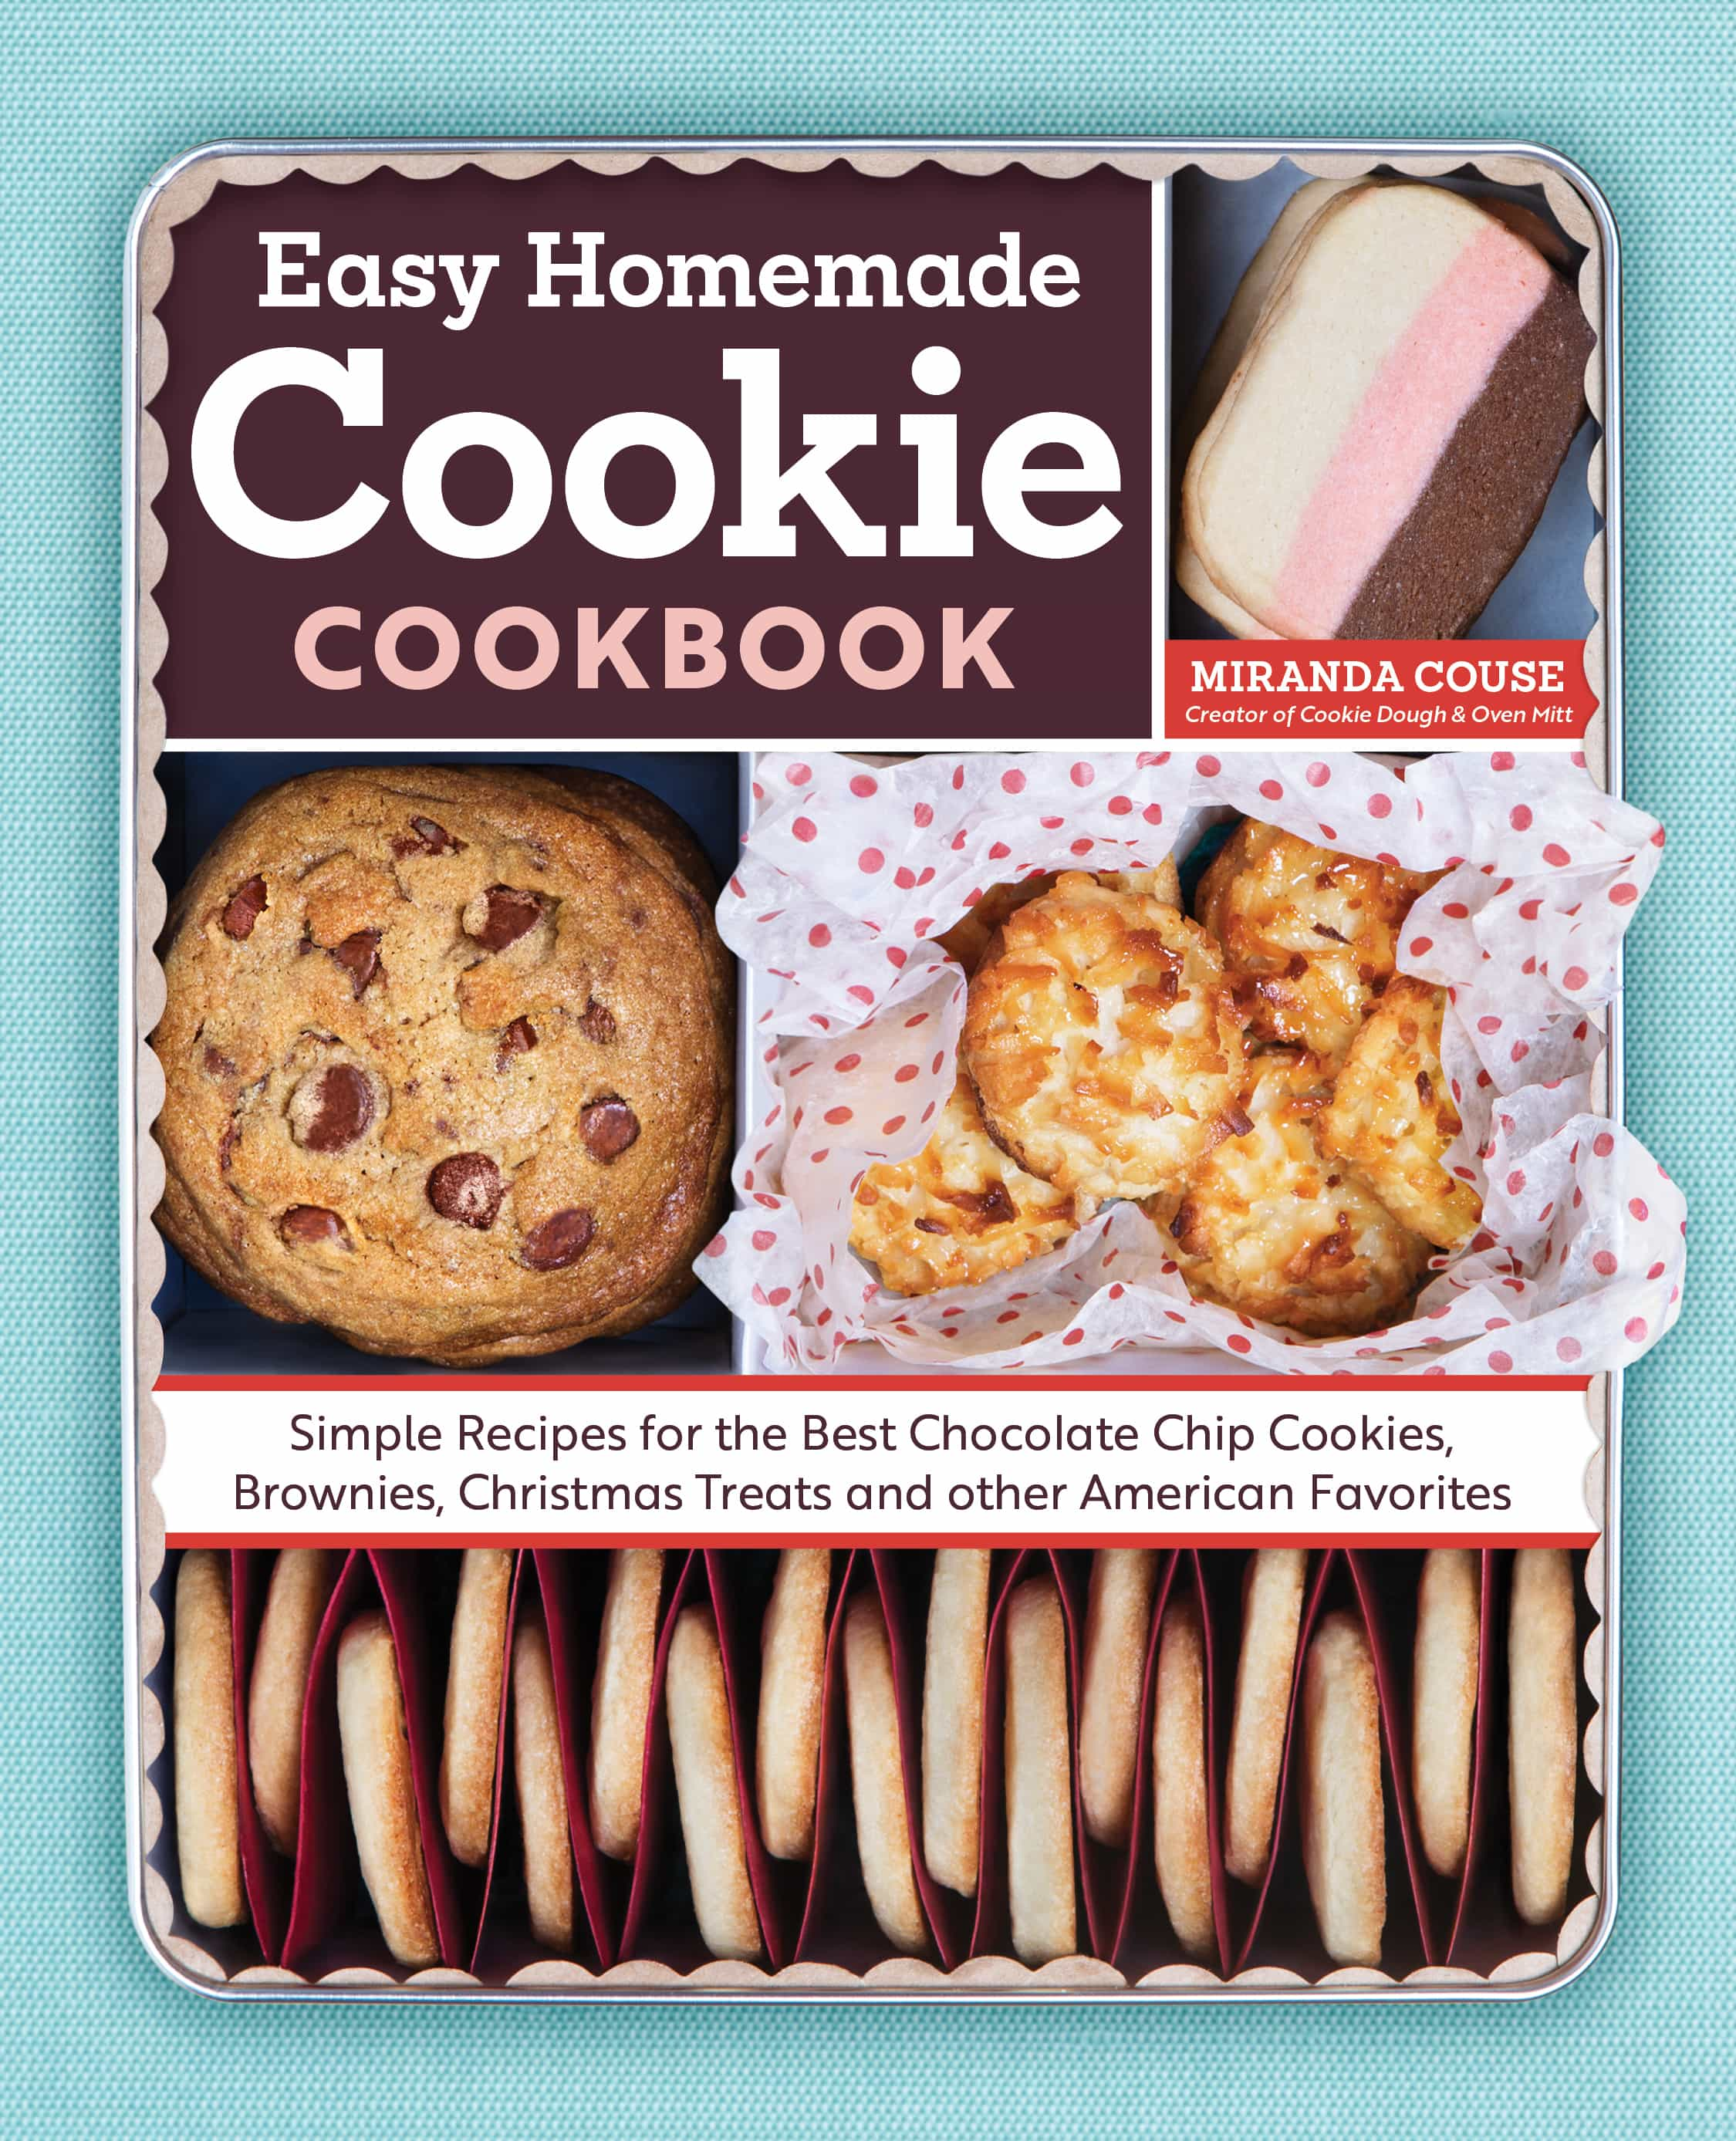 Easy Homemade Cookie Cookbook - It's packed full of 160 cookie and bar recipes